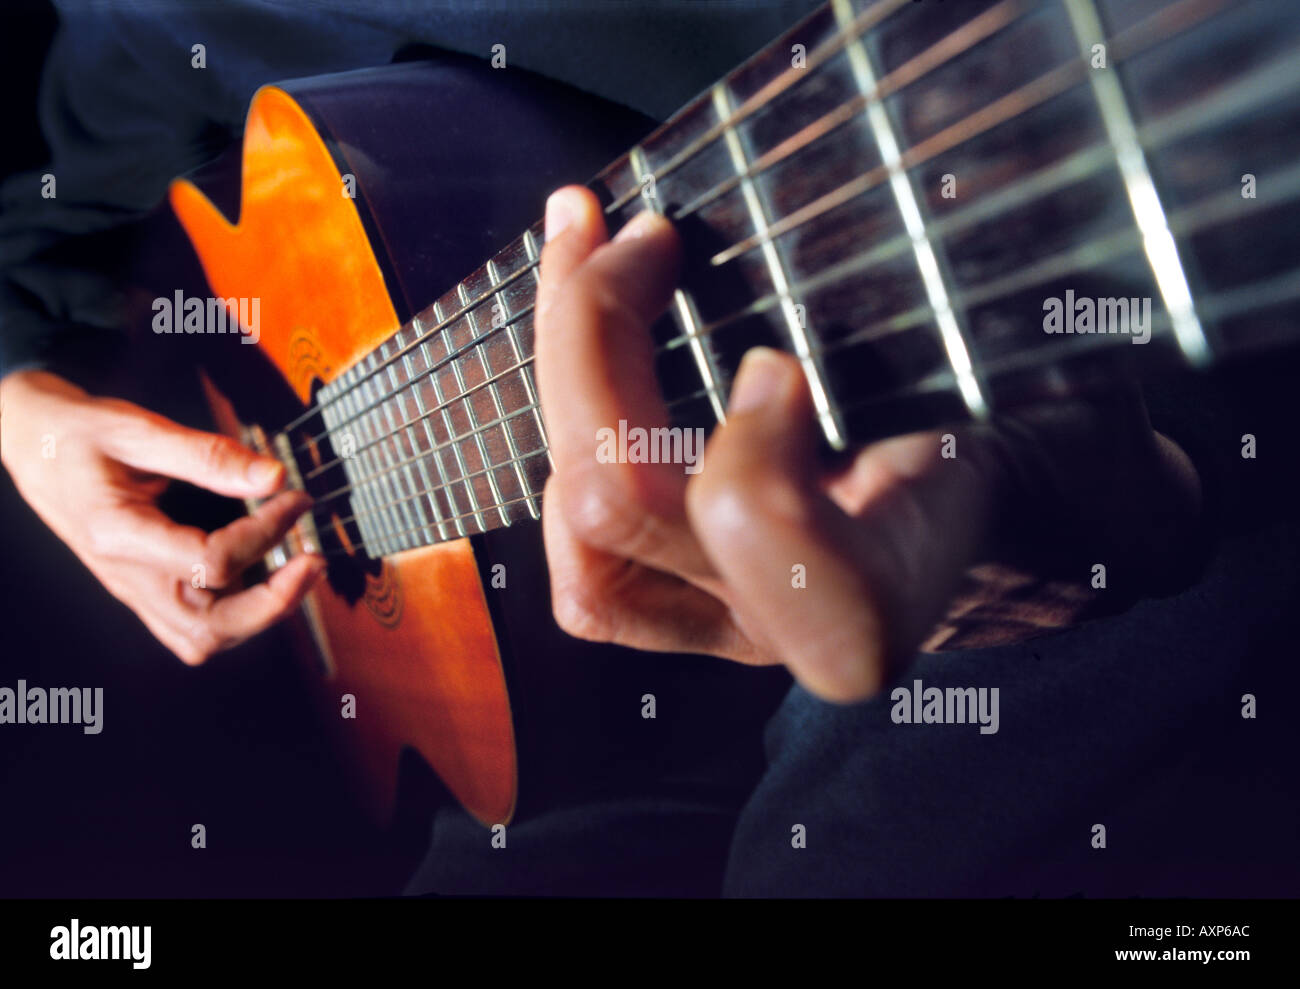 Hands on guitar strings - Stock Image